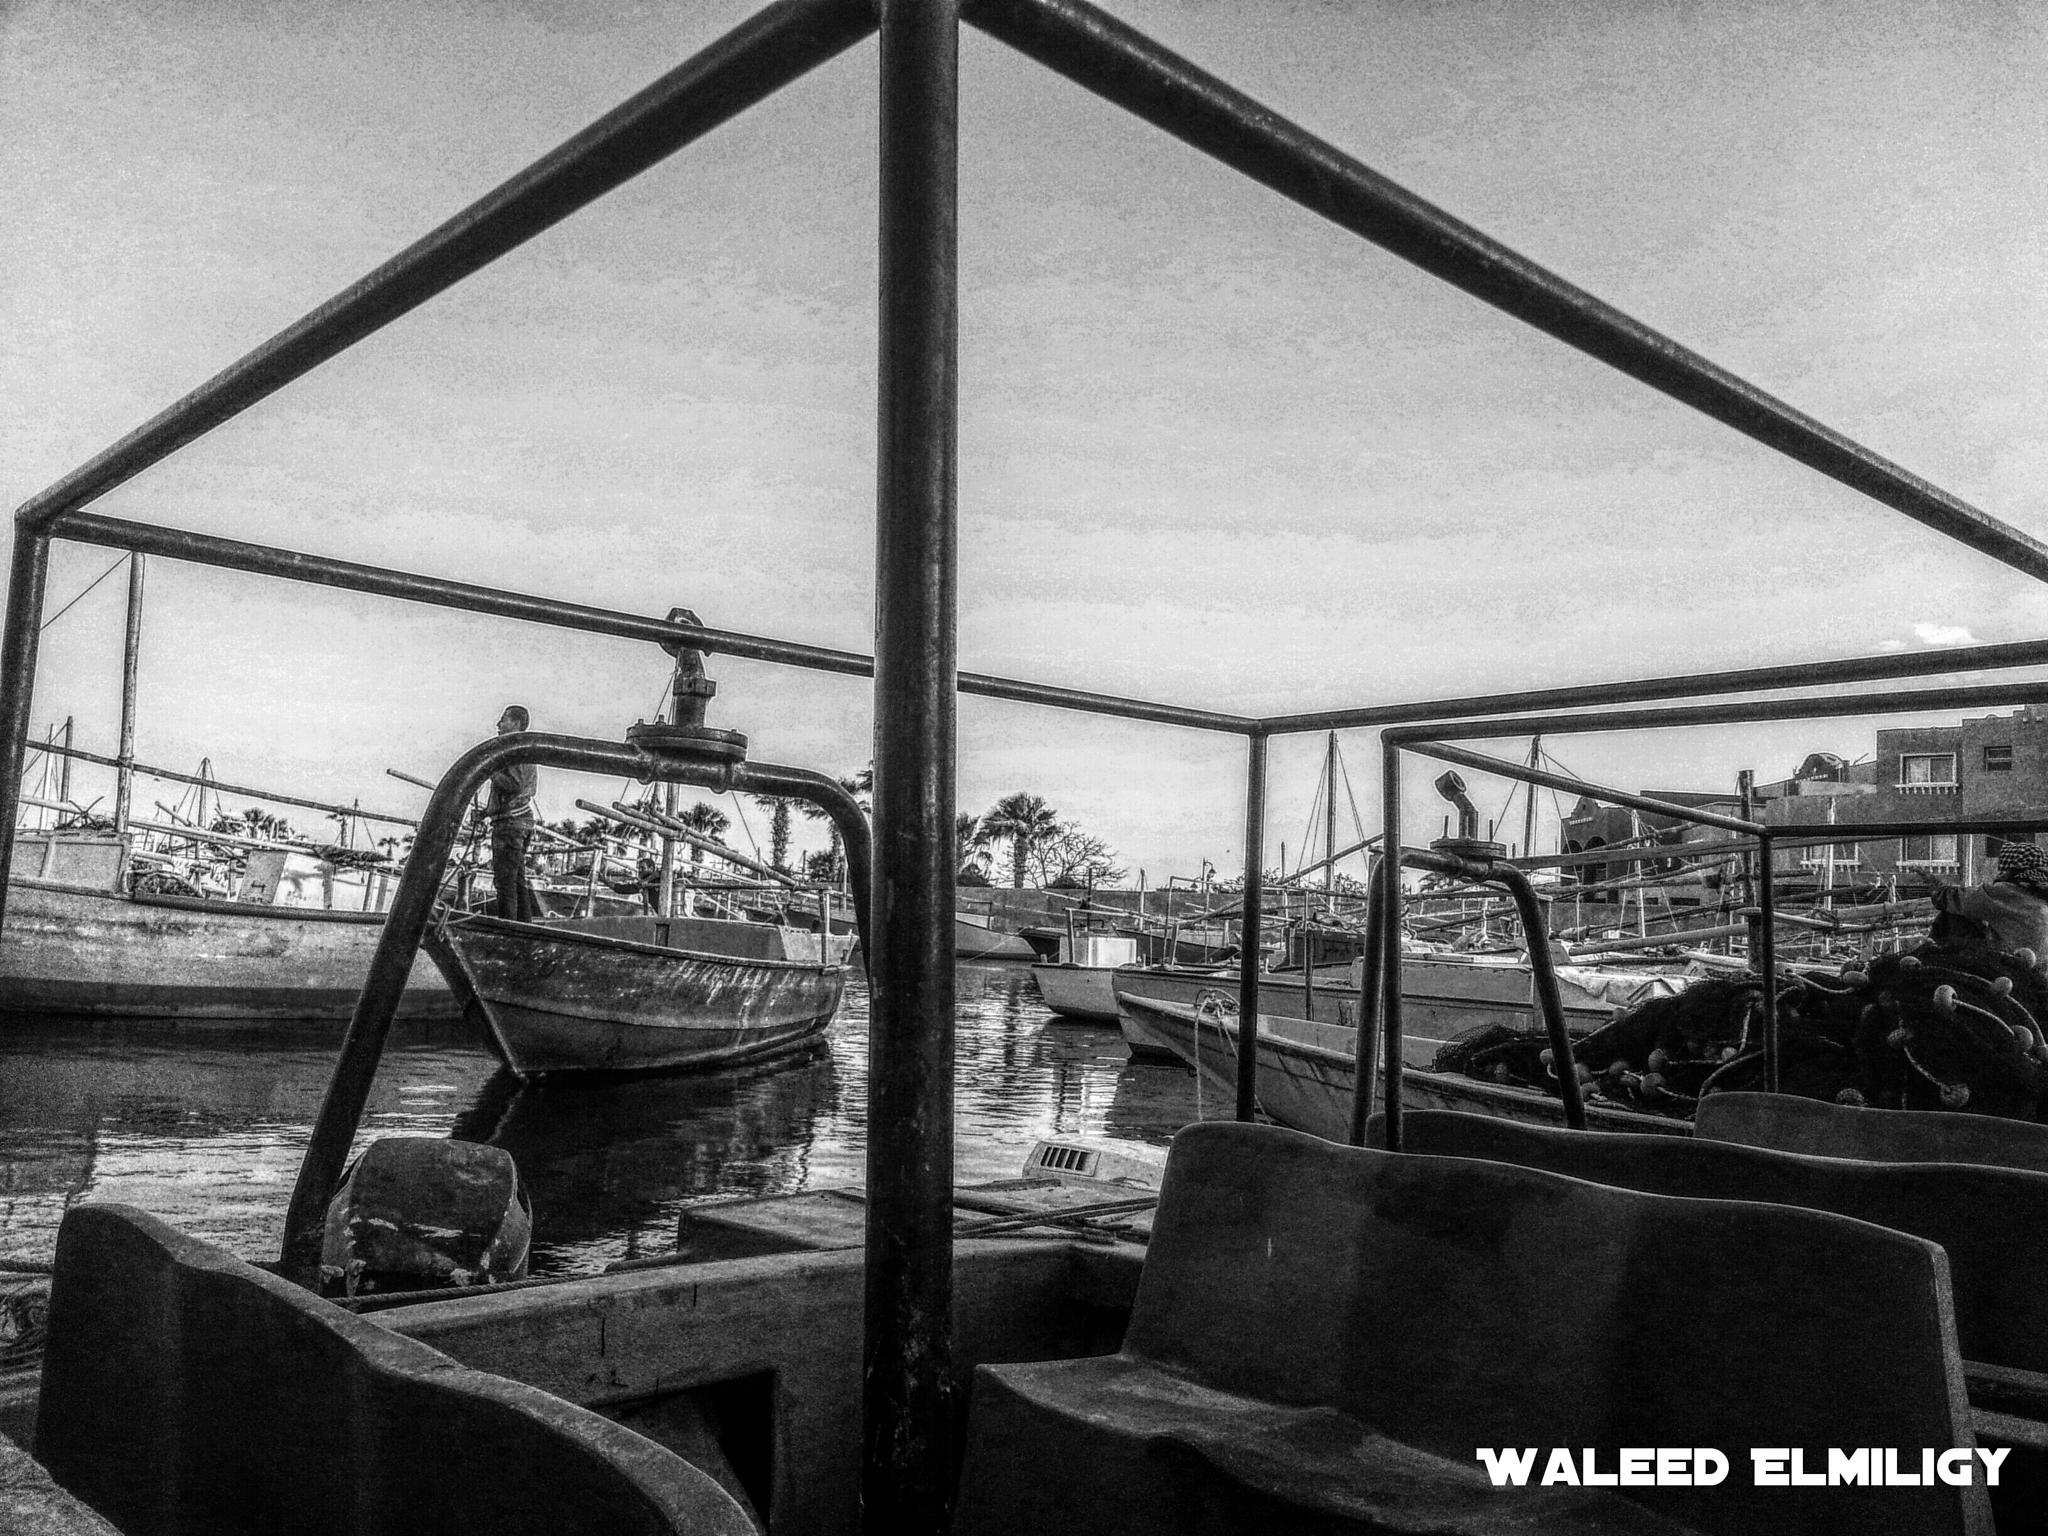 the boat  by Waleed Elmiligy